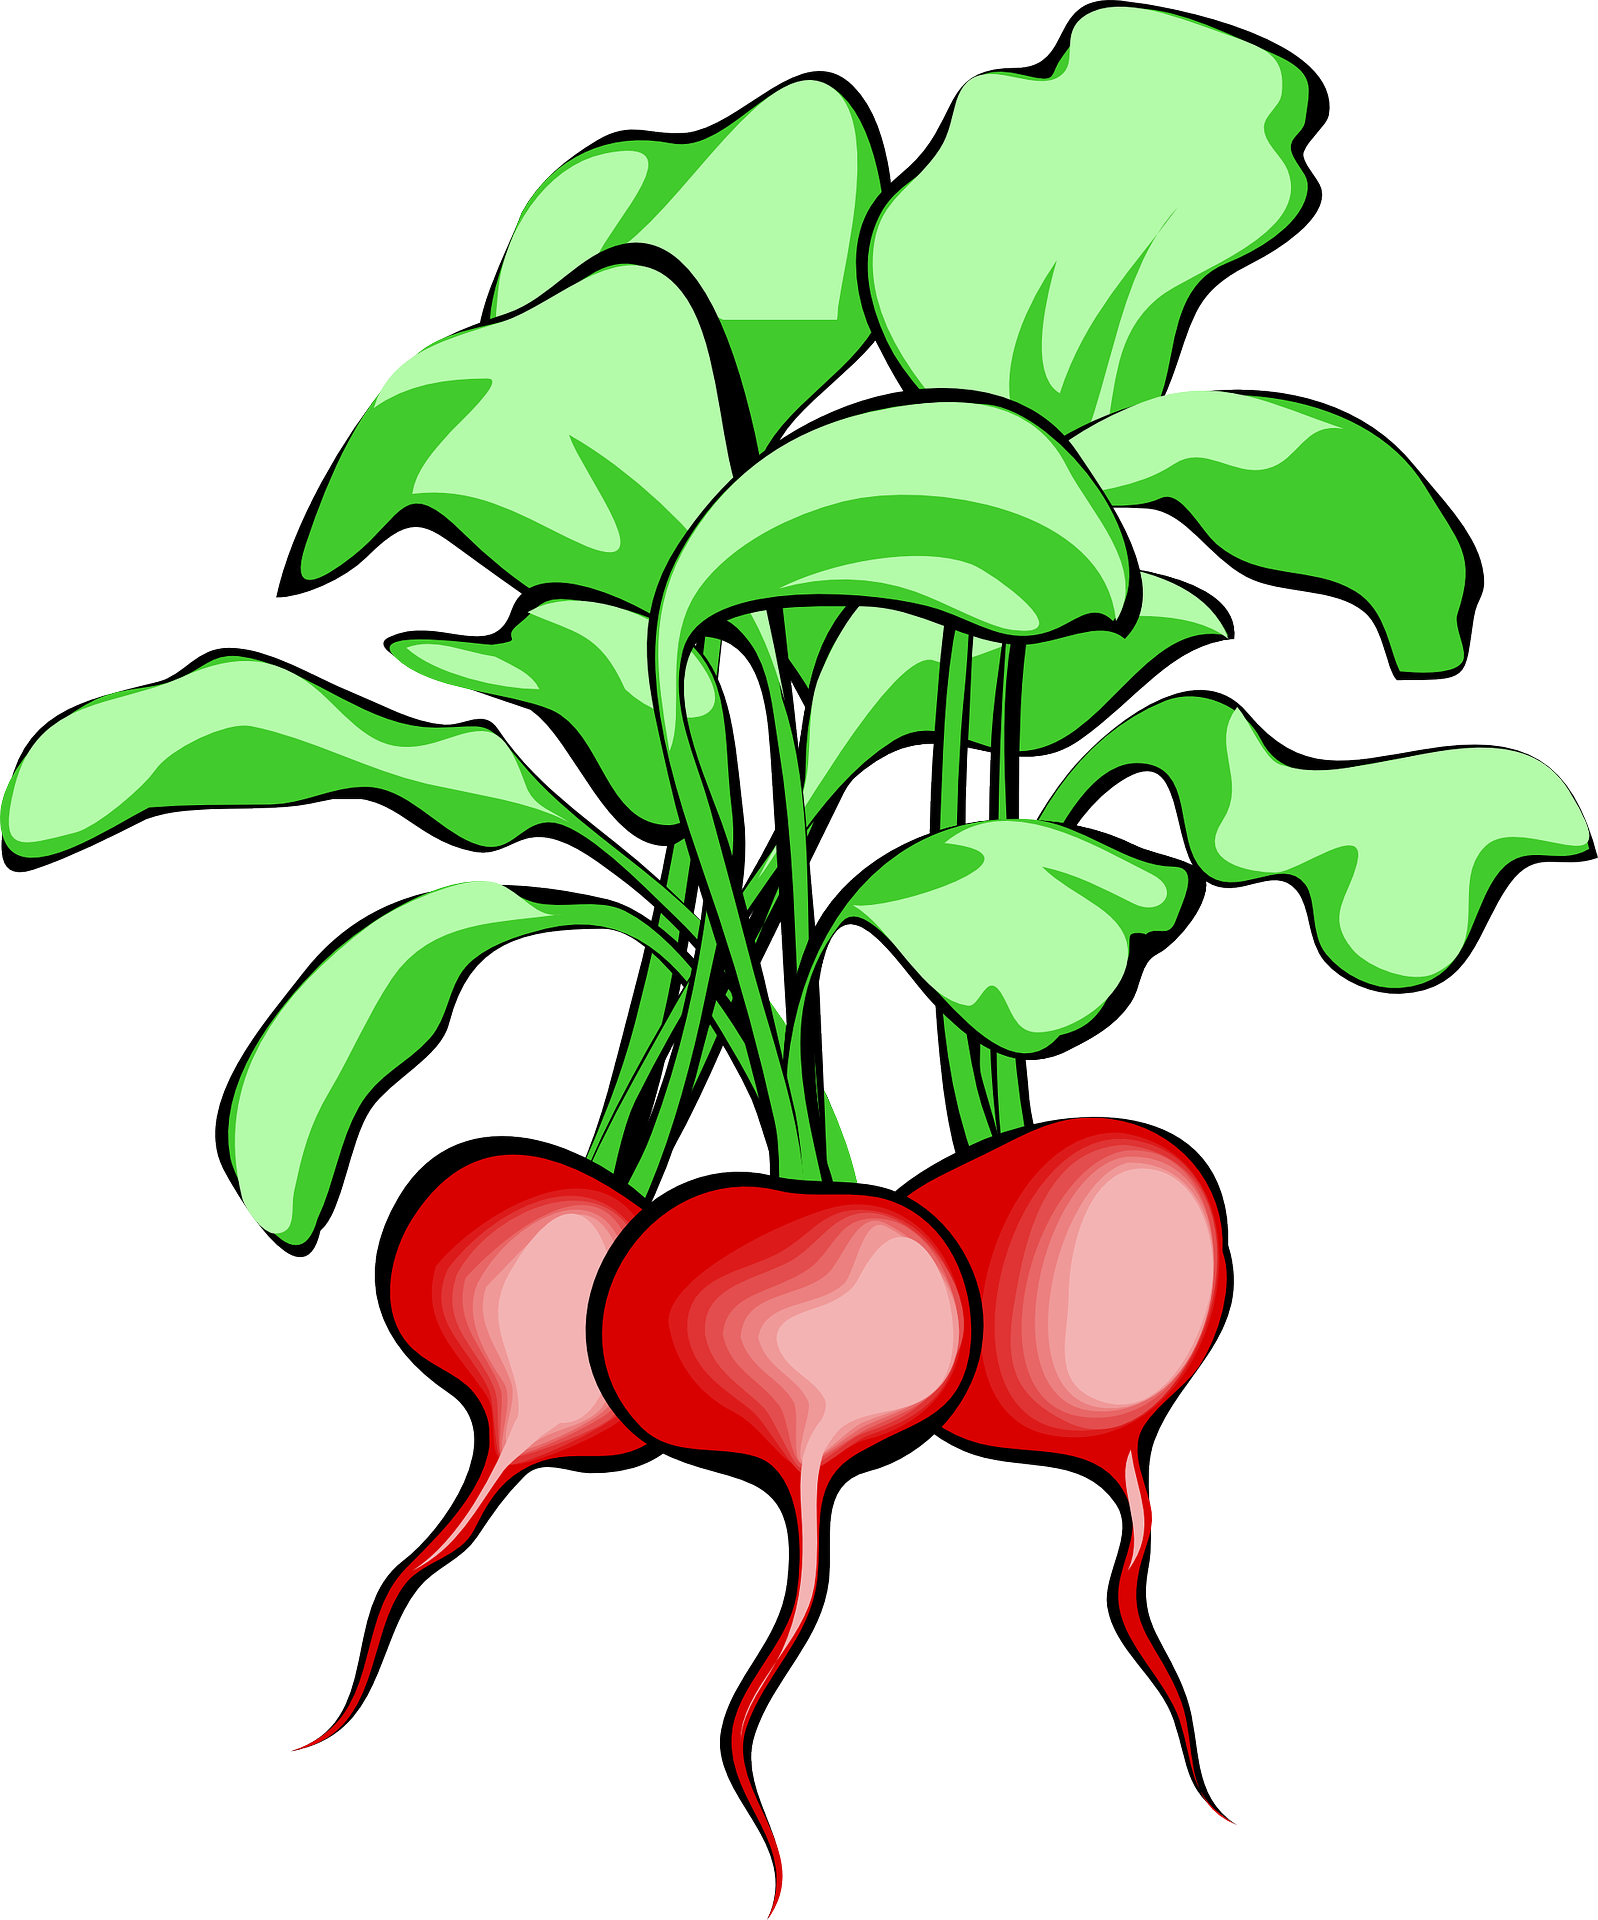 clip download Beets drawing. Of beetroot vegetables free